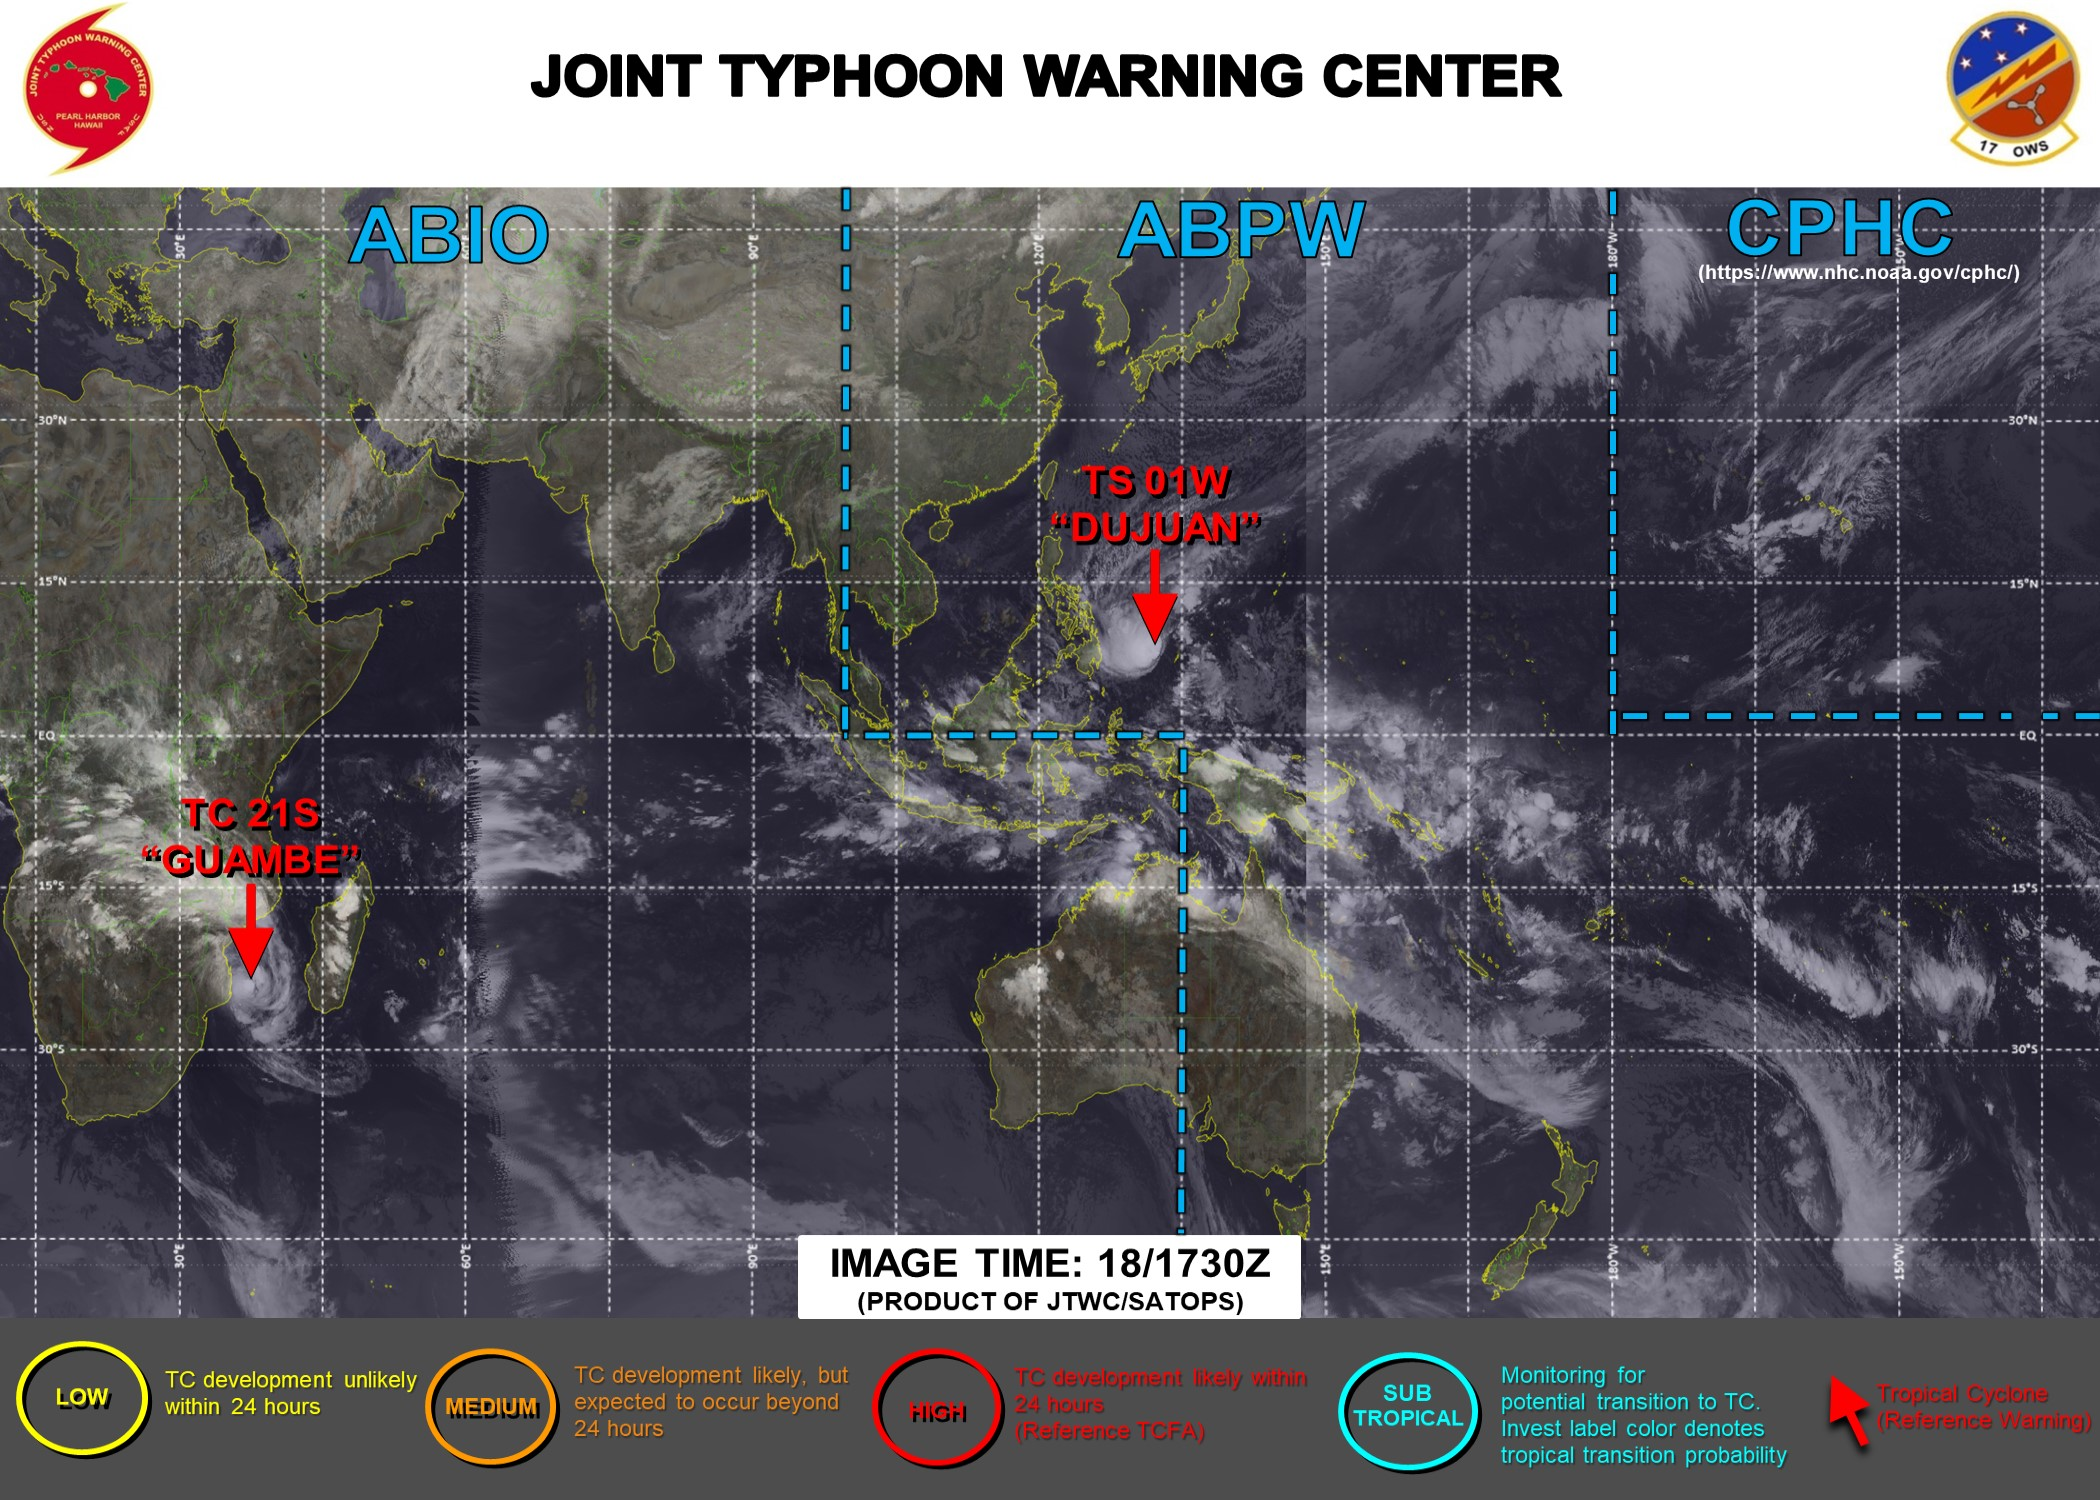 19/00UTC. JTWC IS ISSUING 6HOURLY WARNINGS ON 01W AND 12HOURLY WARNINGS ON 21S. 3 HOURLY SATELLITE BULLETINS ARE ISSUED FOR BOTH SYSTEMS.